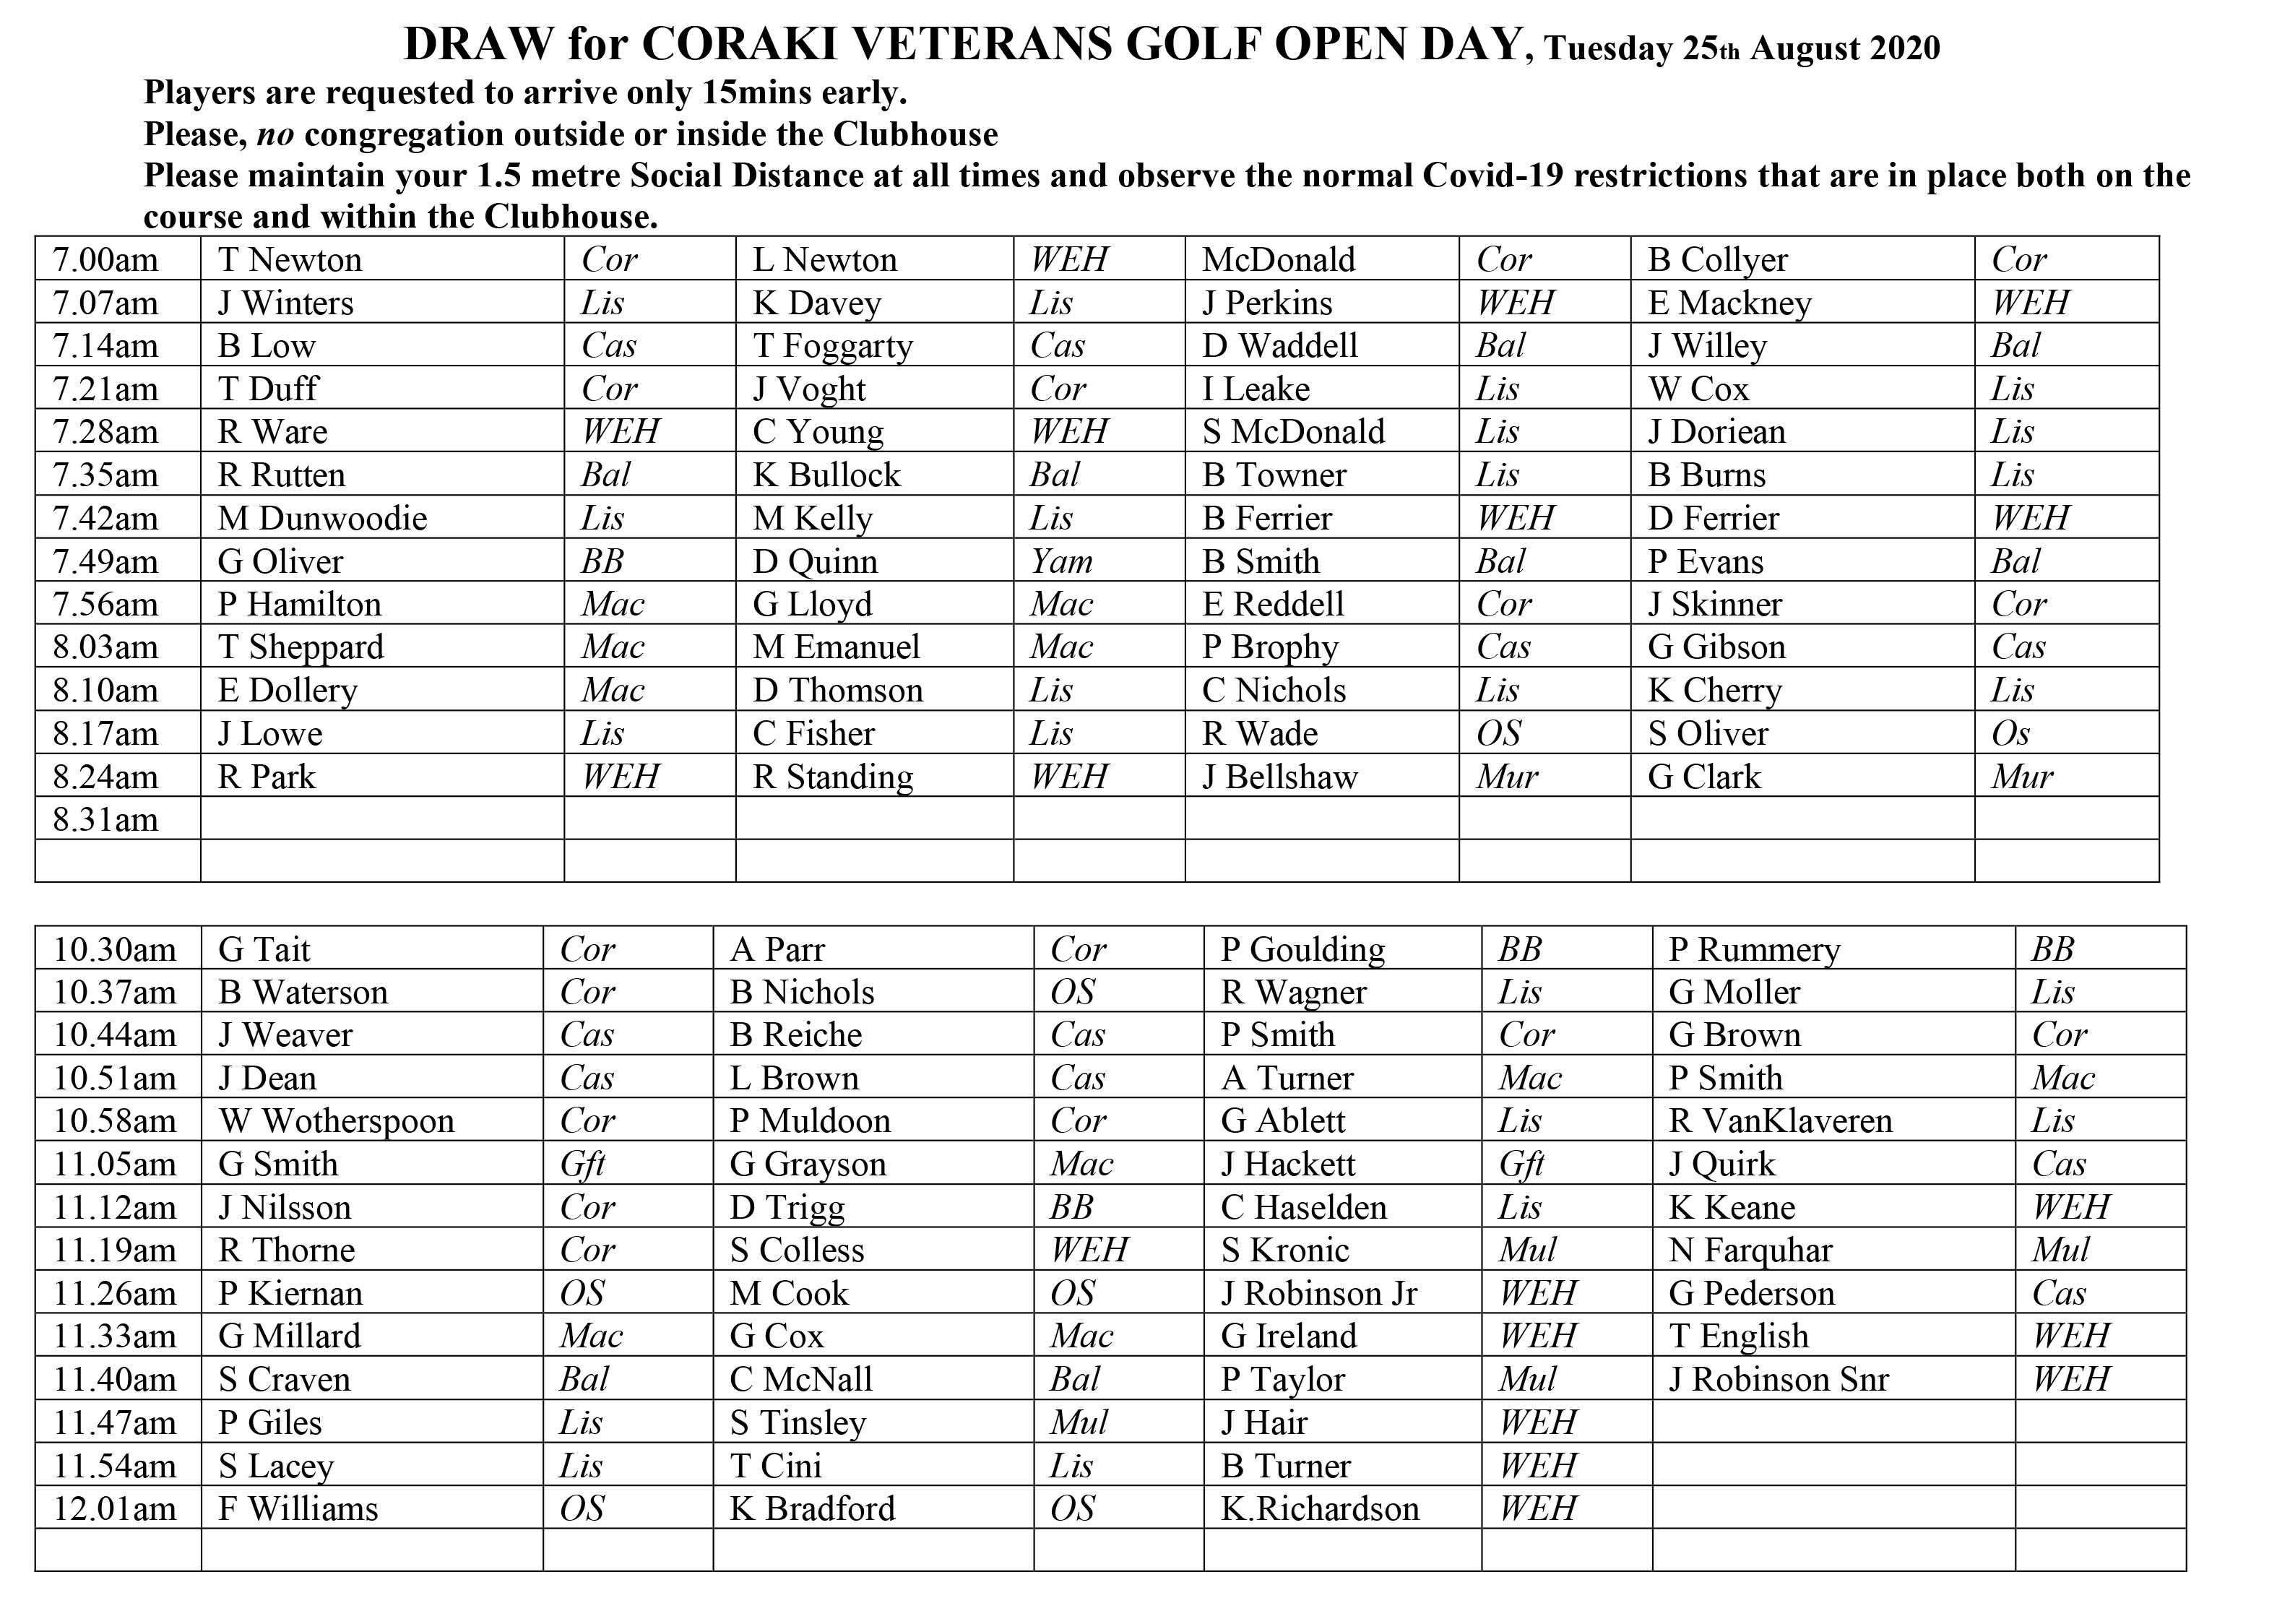 GOLF OPEN DAY DRAW SHEETS 2020 Master from Ormond